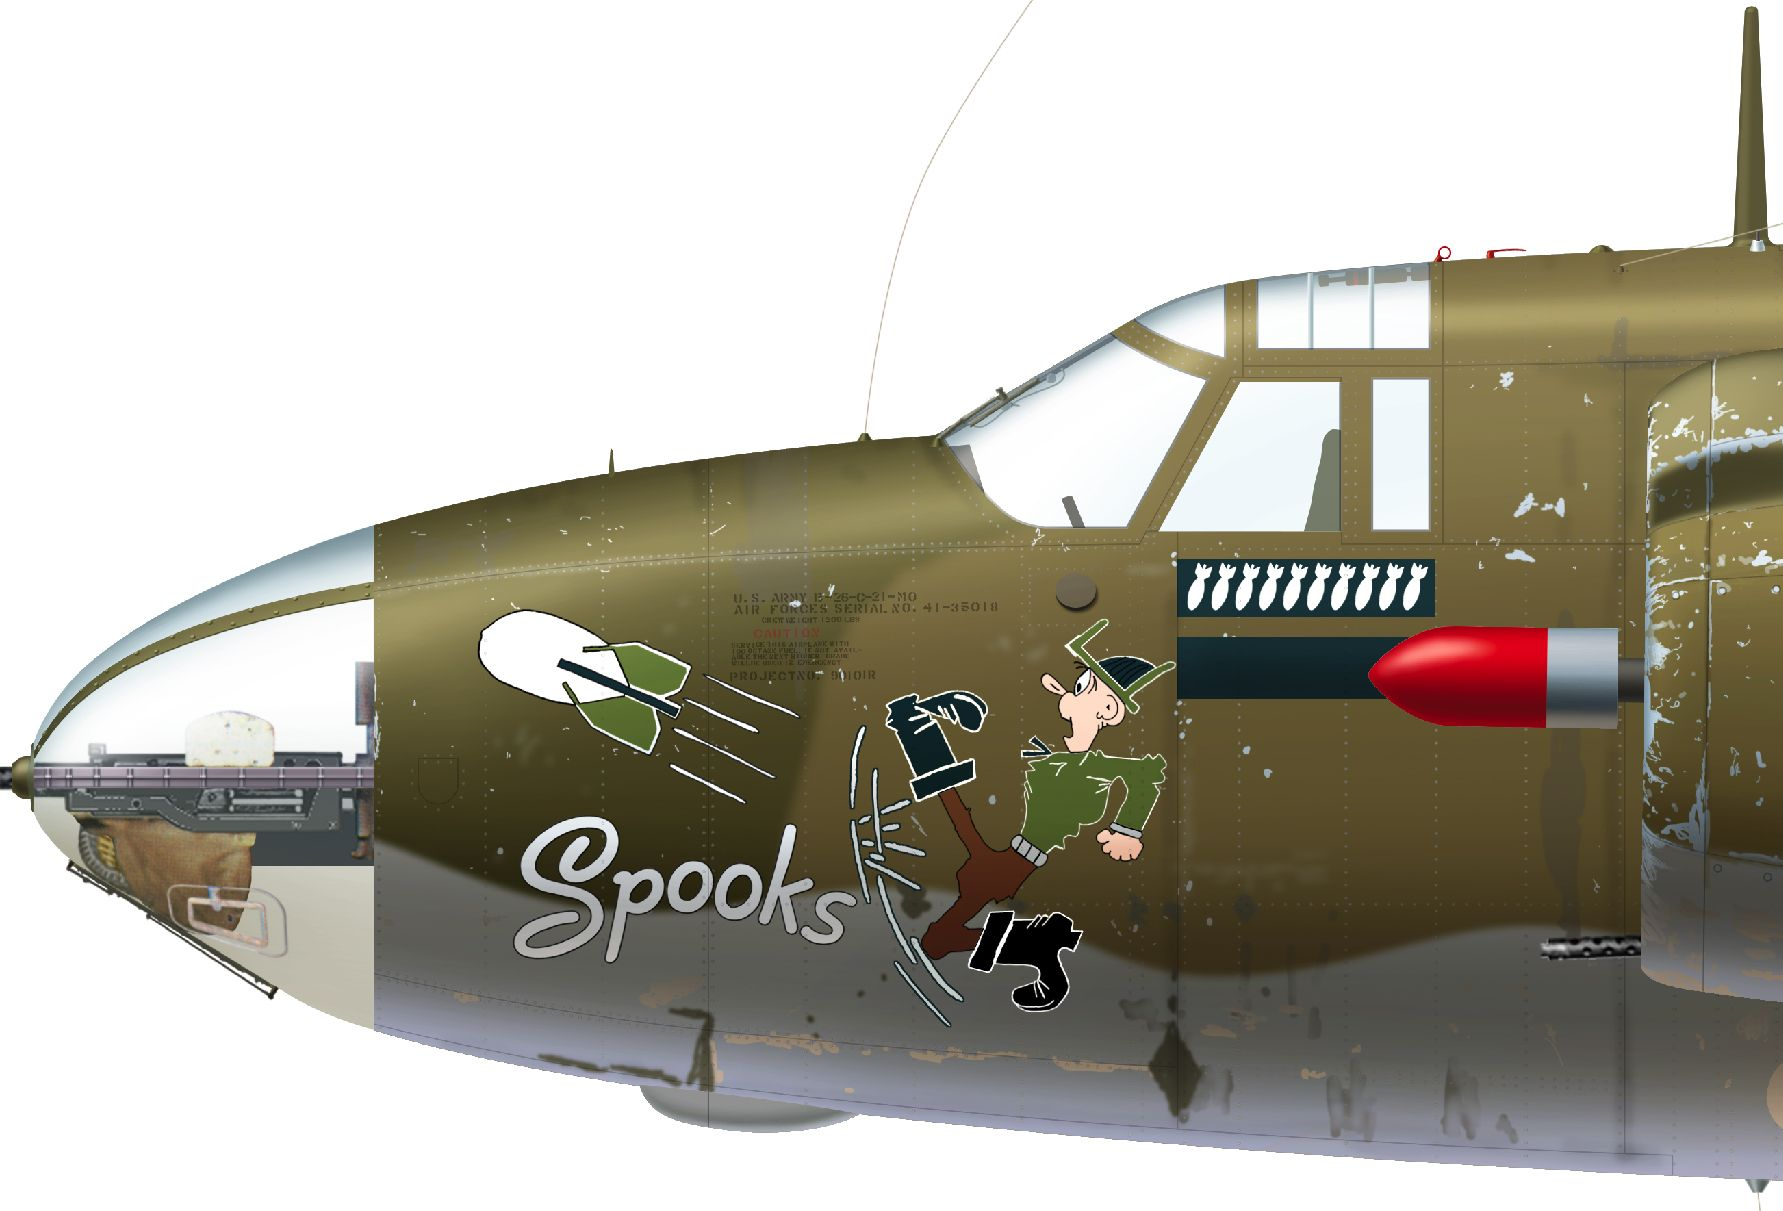 B-26C-20-MO s/n 41-35018 B/N 32 'Spooks' flown by Lt. Chester M. Angell of the 37th BS, 17th BG